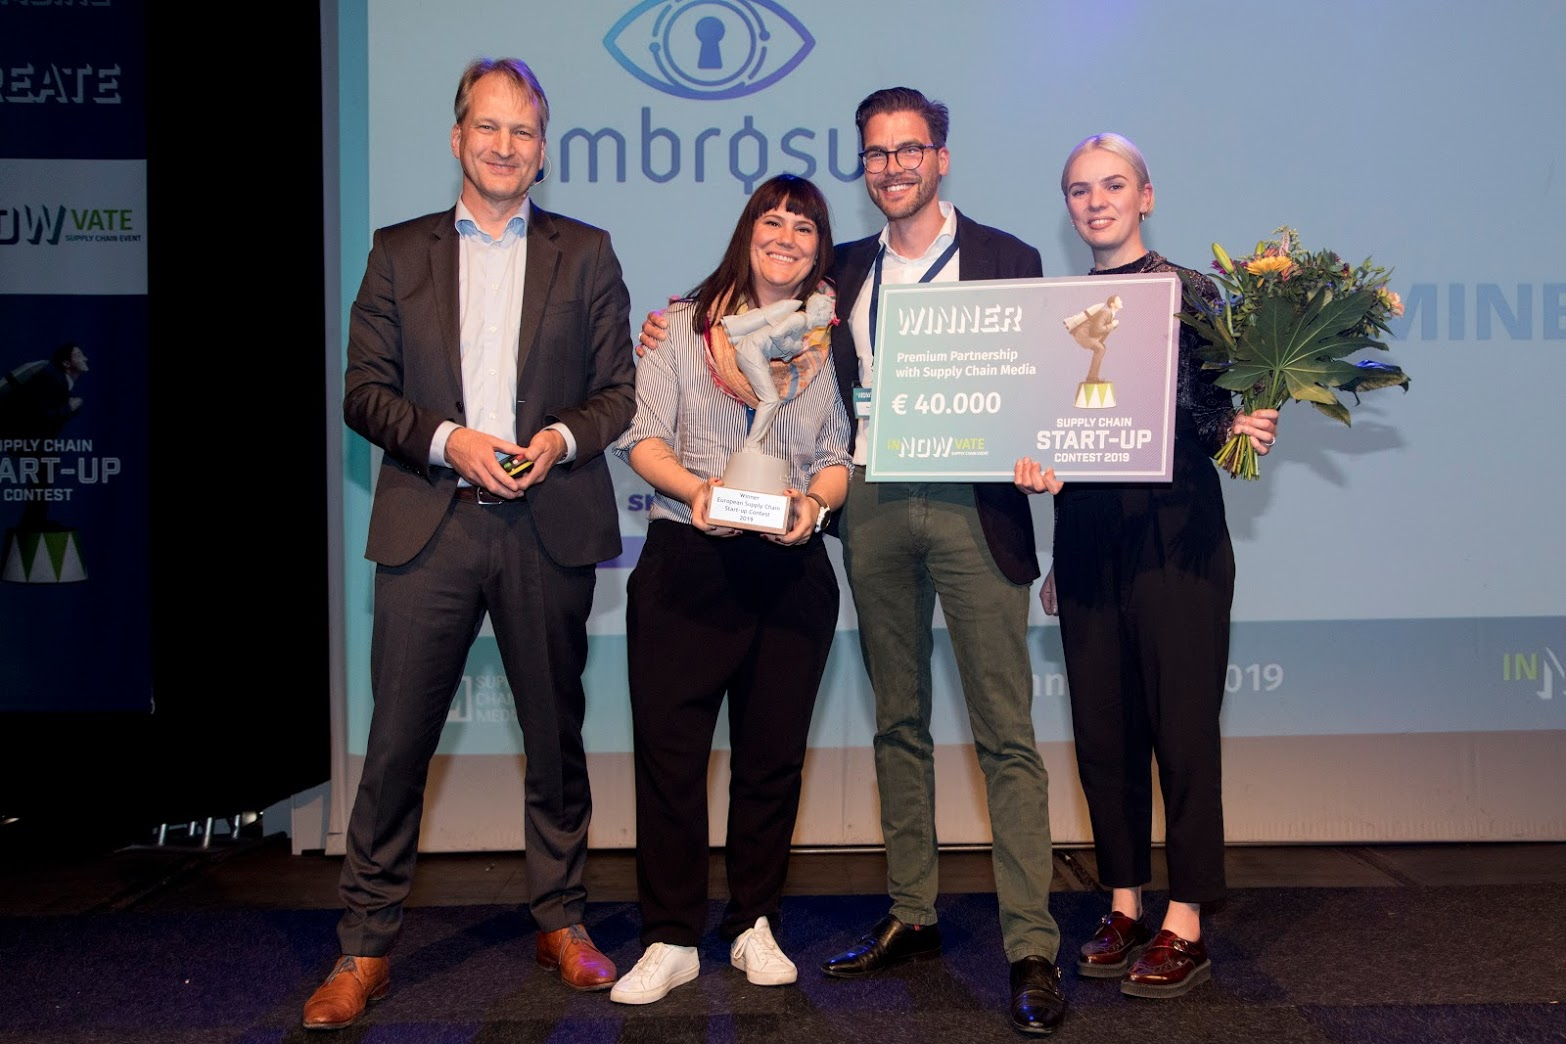 Circular IQ wins second European Supply Chain Start-up Contest